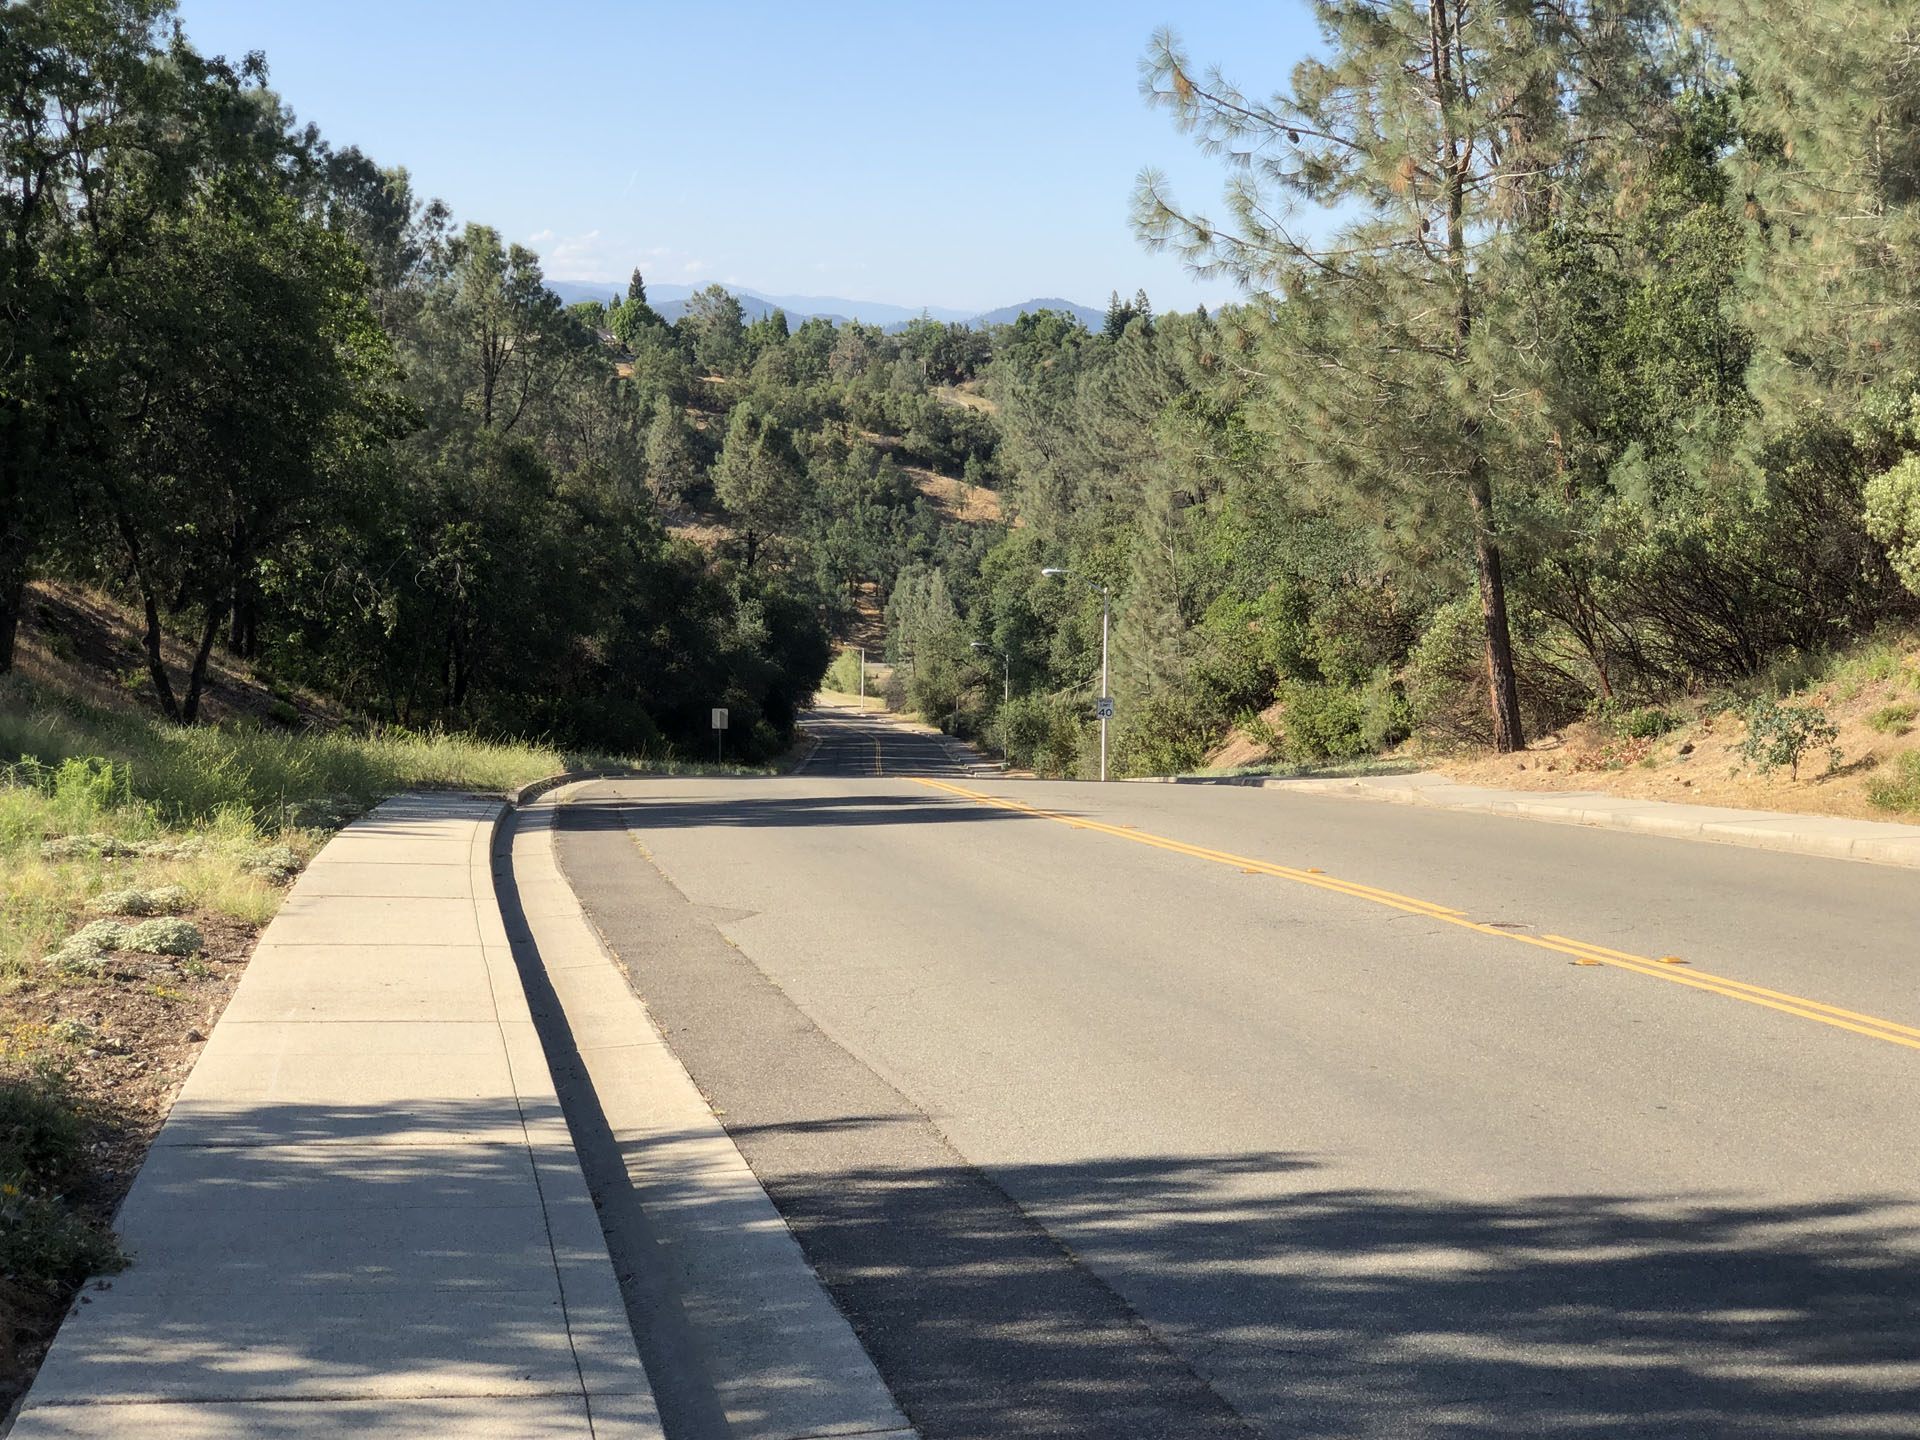 The presence of sidewalks greatly diminishes the chances of being struck by a vehicle while jogging up the hill, costing it points: fear is a great motivator.